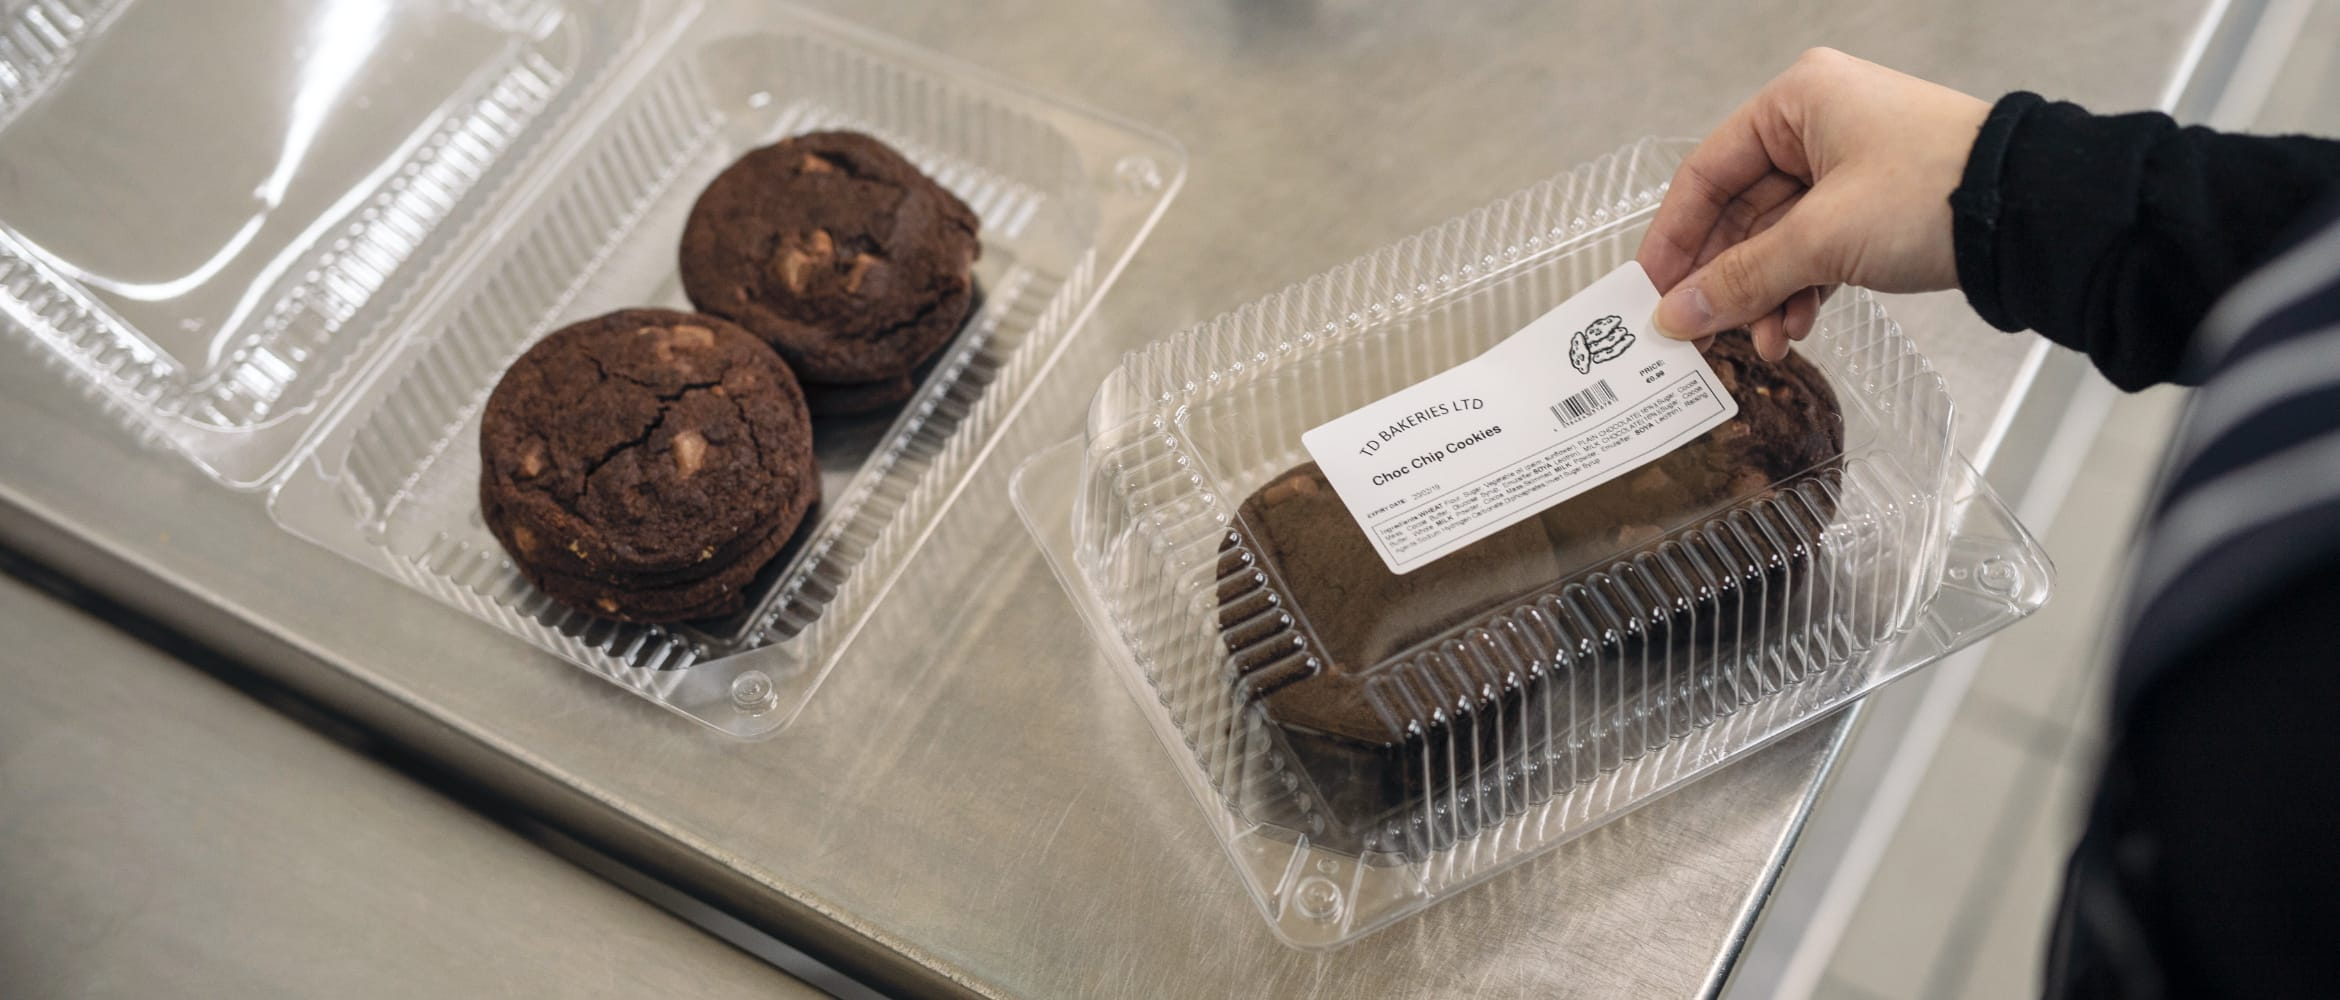 A baker applying an adhesive food description label to a clear plastic box containing choc chip cookies in a kitchen environment